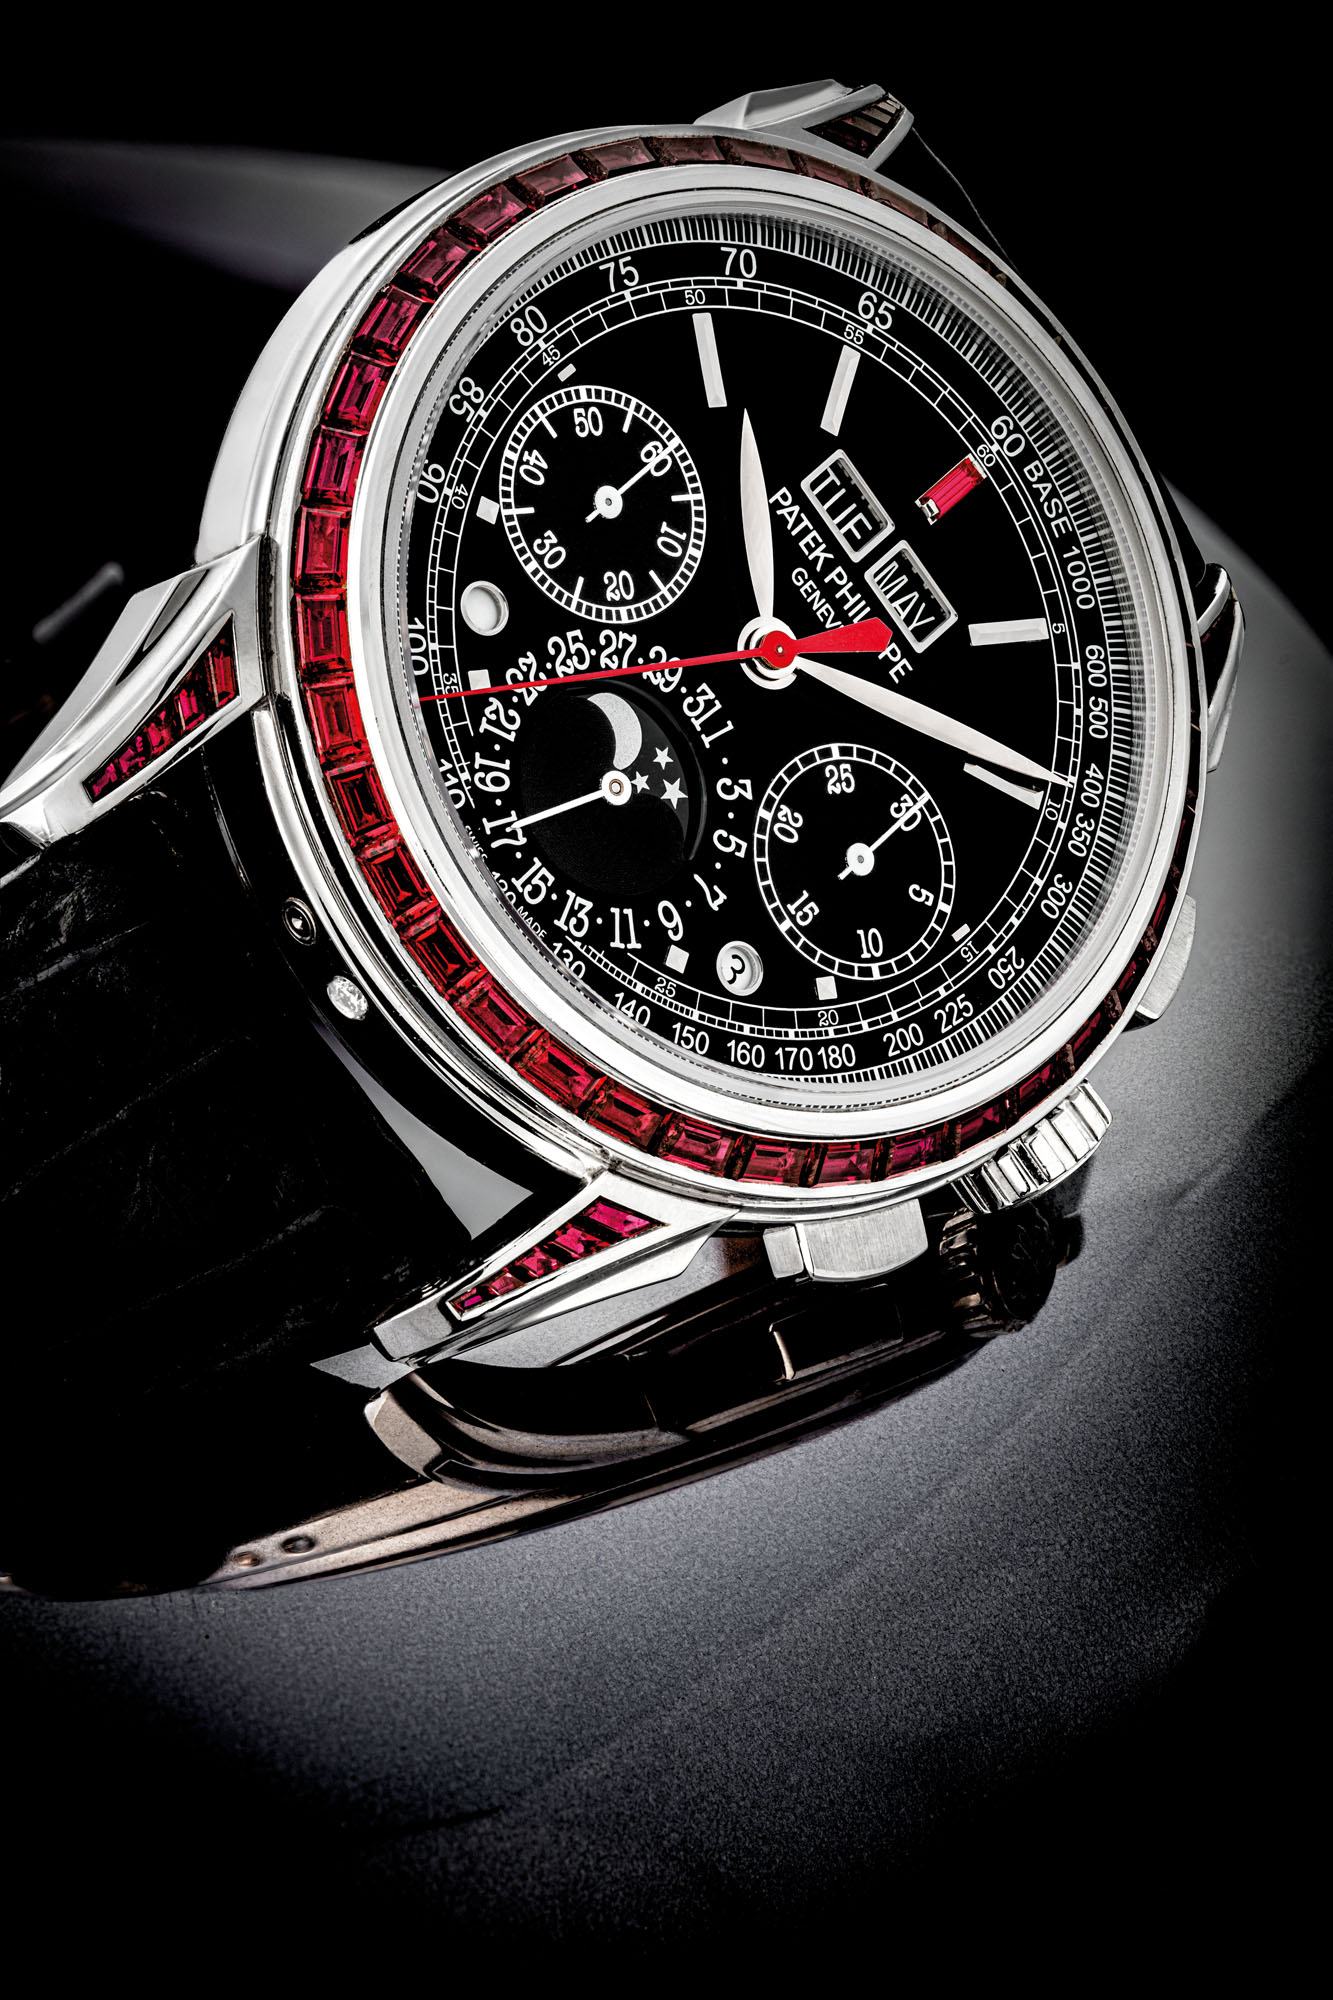 PATEK PHILIPPE. AN IMPRESSIVE AND VERY RARE PLATINUM AND RUBY-SET PERPETUAL CALENDAR CHRONOGRAPH WRISTWATCH WITH MOON PHASES, LEAP YEAR AND DAY/NIGHT INDICATION